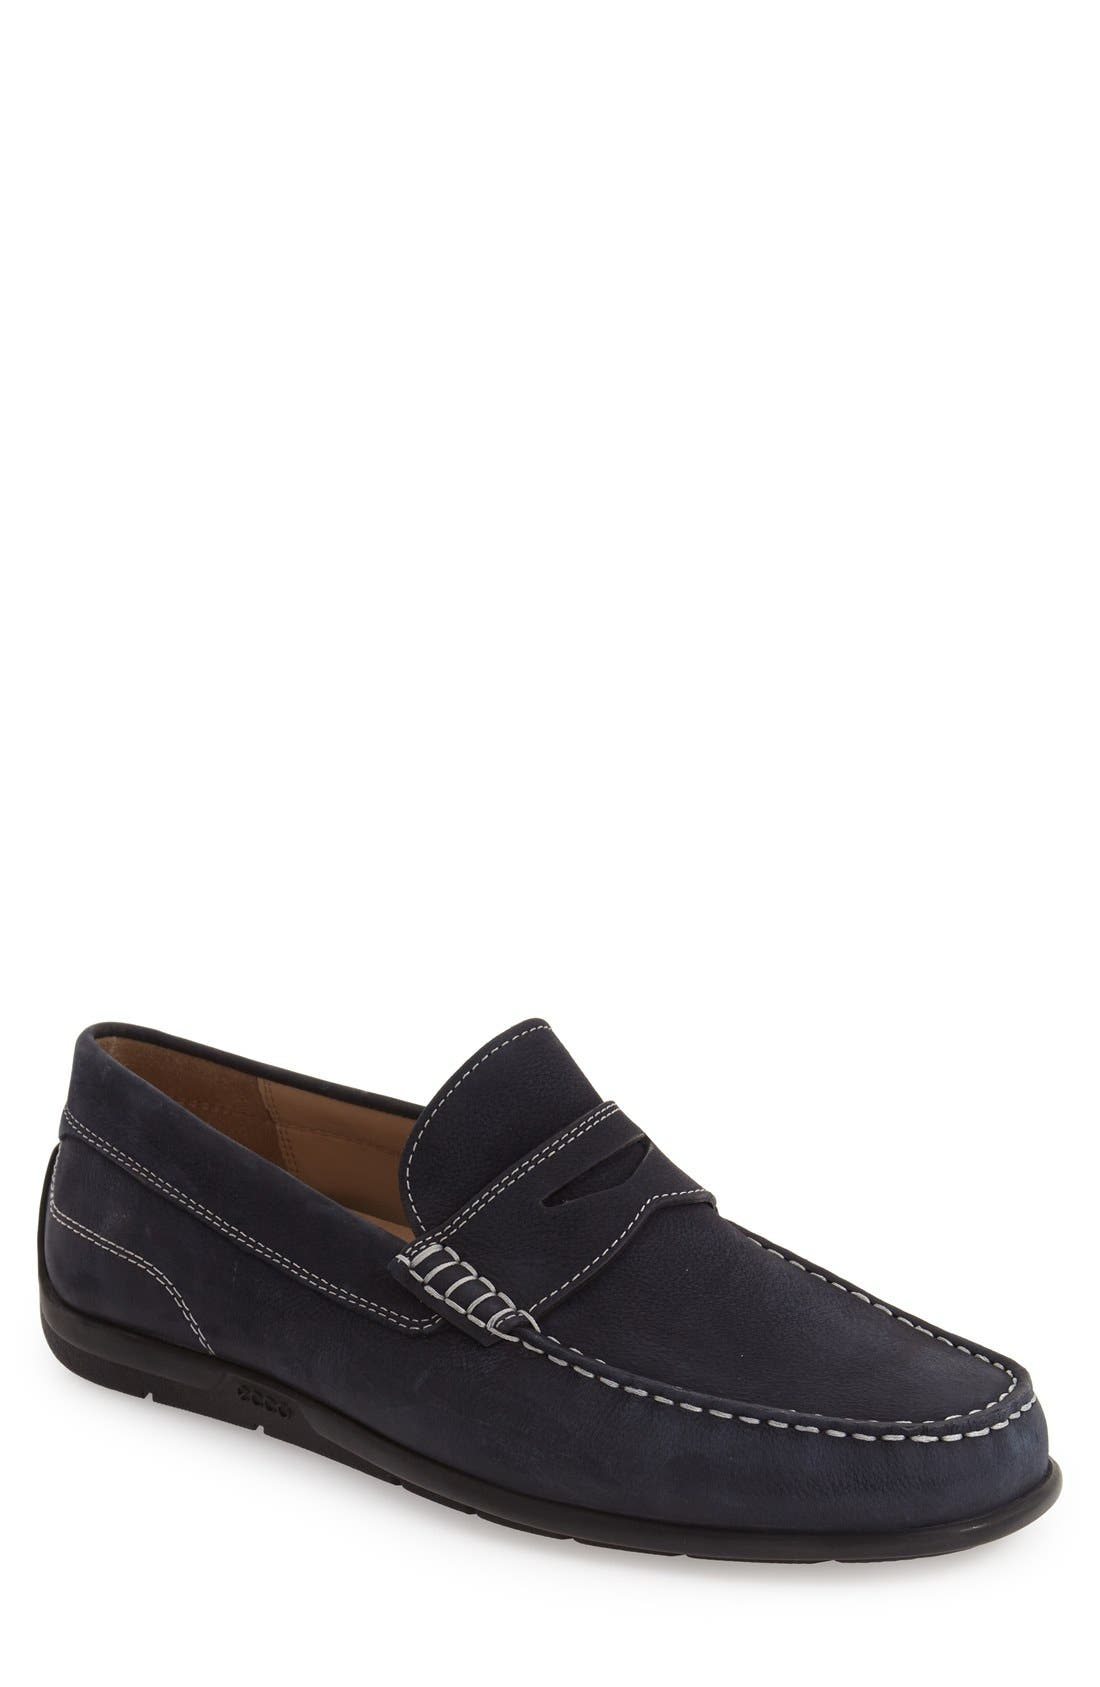 'Classic Moc 2.0' Penny Loafer,                             Main thumbnail 1, color,                             Navy Leather